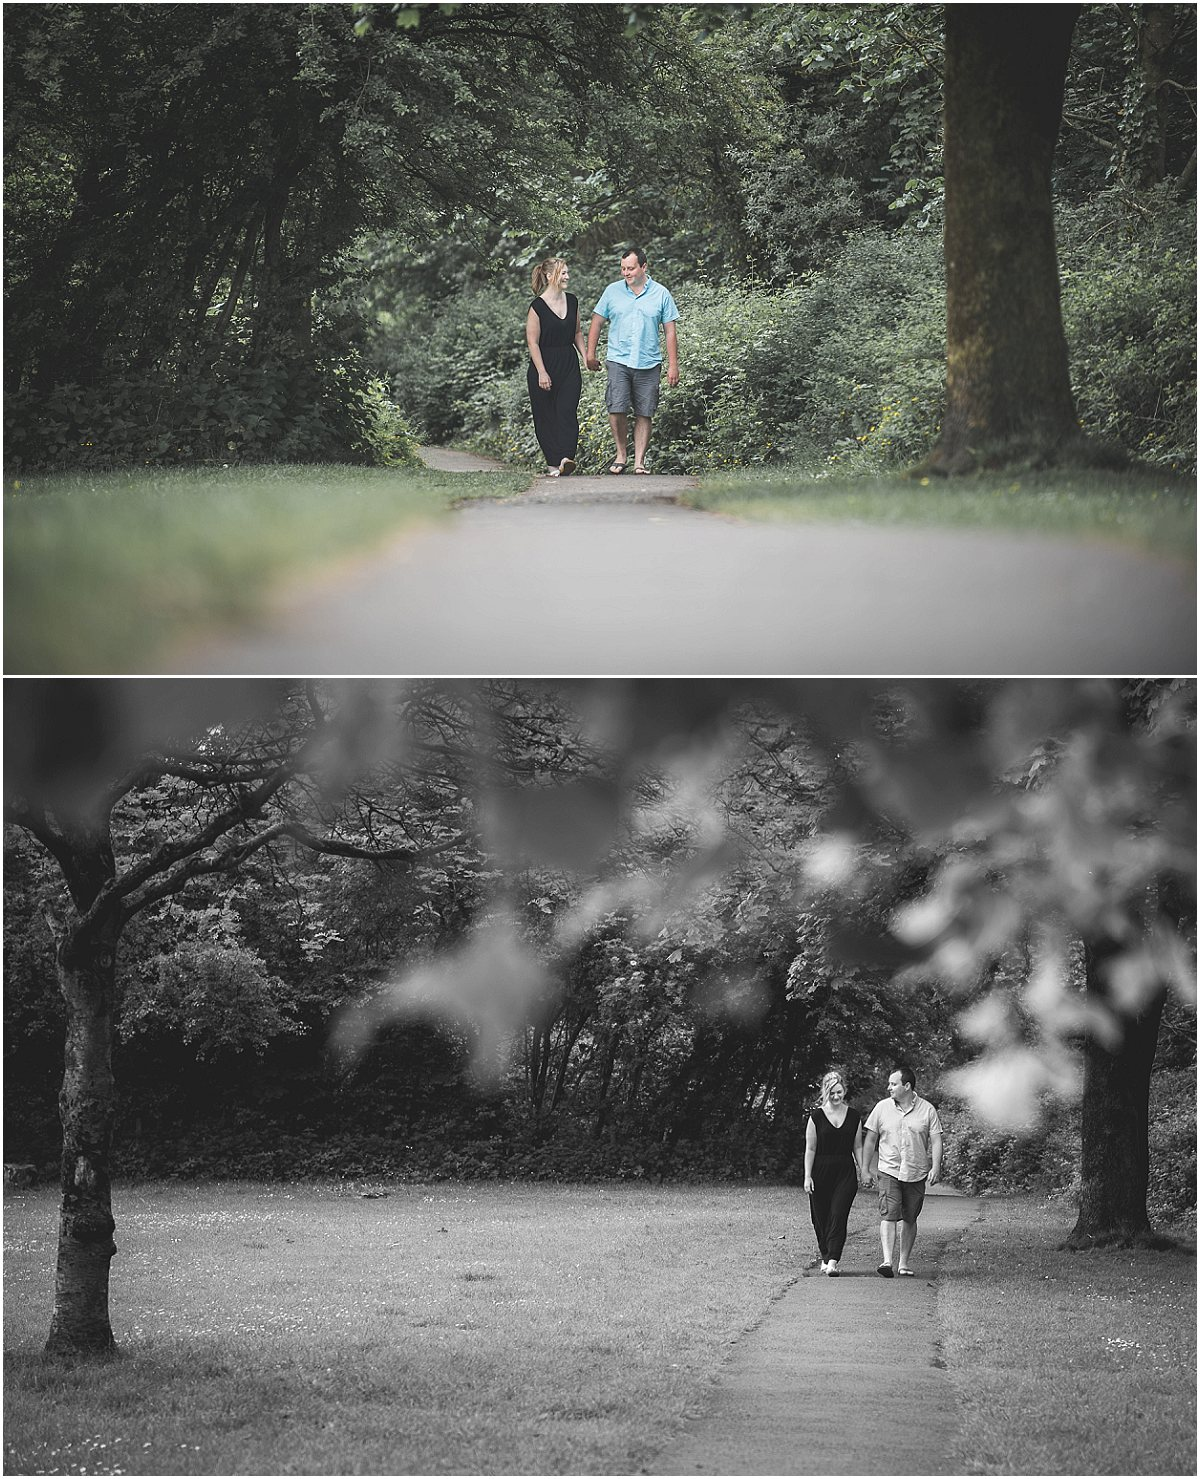 Engagement Photoshoot on Edisford Bridge | Preston Wedding Photographer